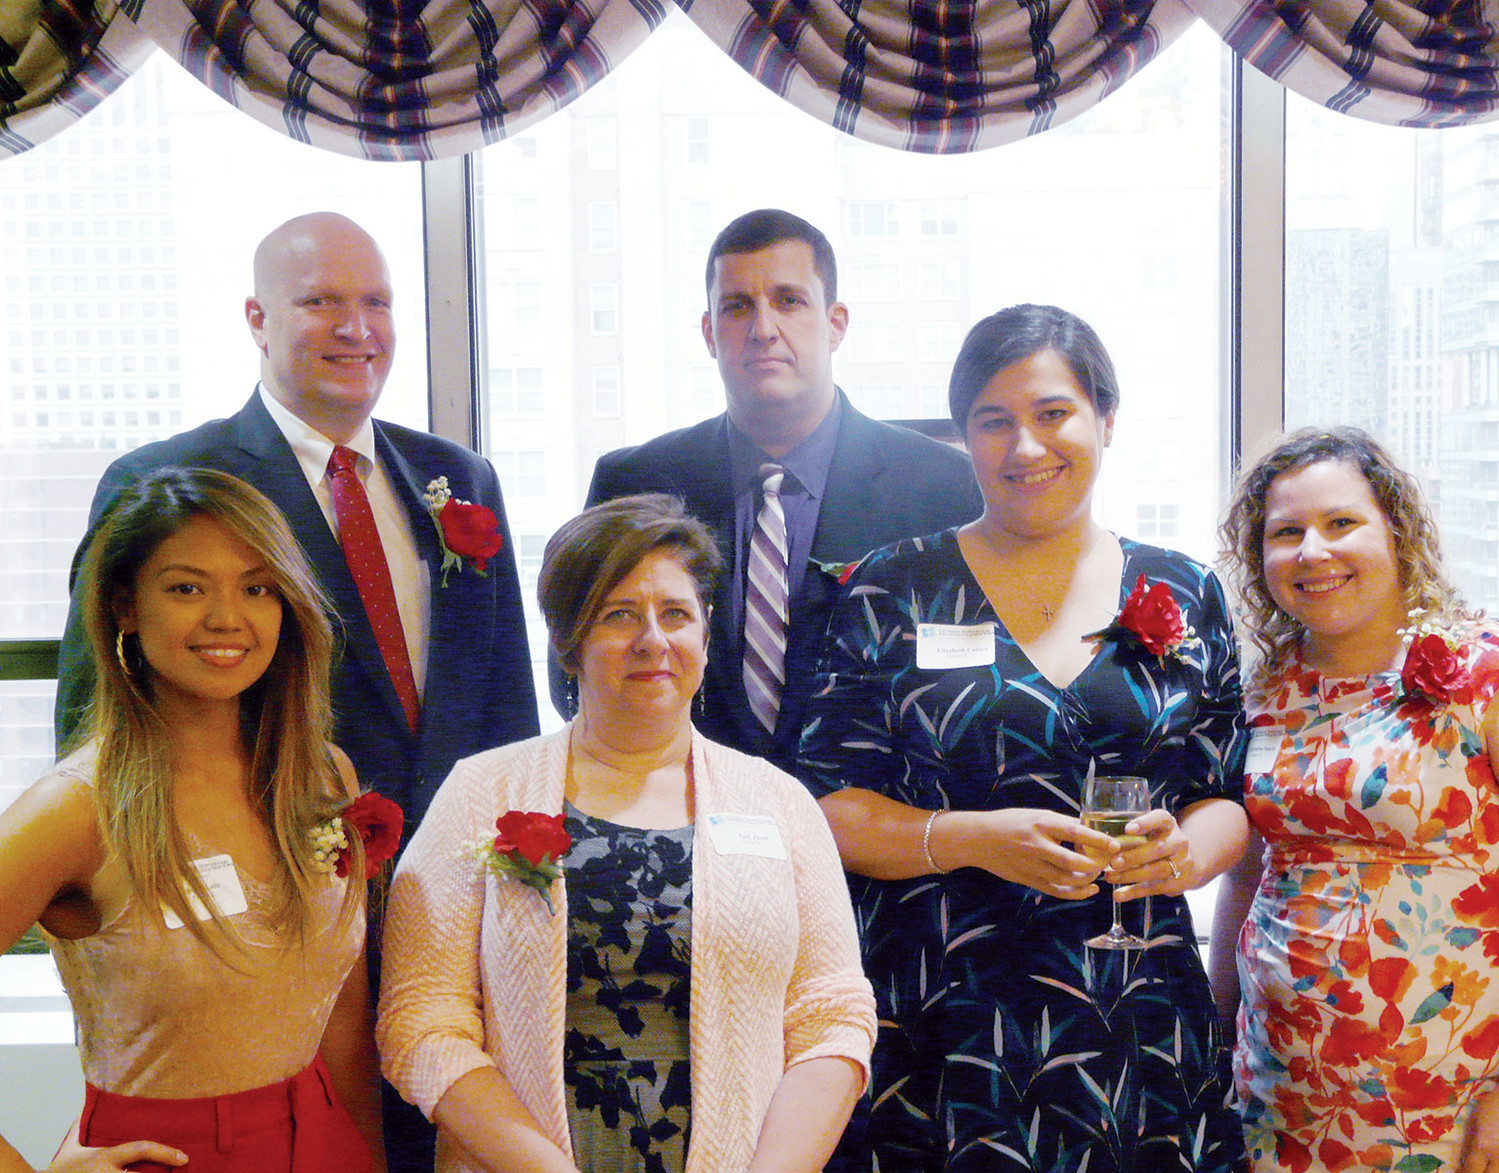 Nine educators were welcomed into Cohort X for the 2018-2019 Curran Catholic School Leadership Academy and six attended the commissioning ceremony at the New York Catholic Center in Manhattan June 20. Front row, from left, are Abigail Lelis, Lori Ziesel, Elizabeth Cafaro and Christina Suarez. Back row, from left, are Brian Donahue and George Eacobacci.